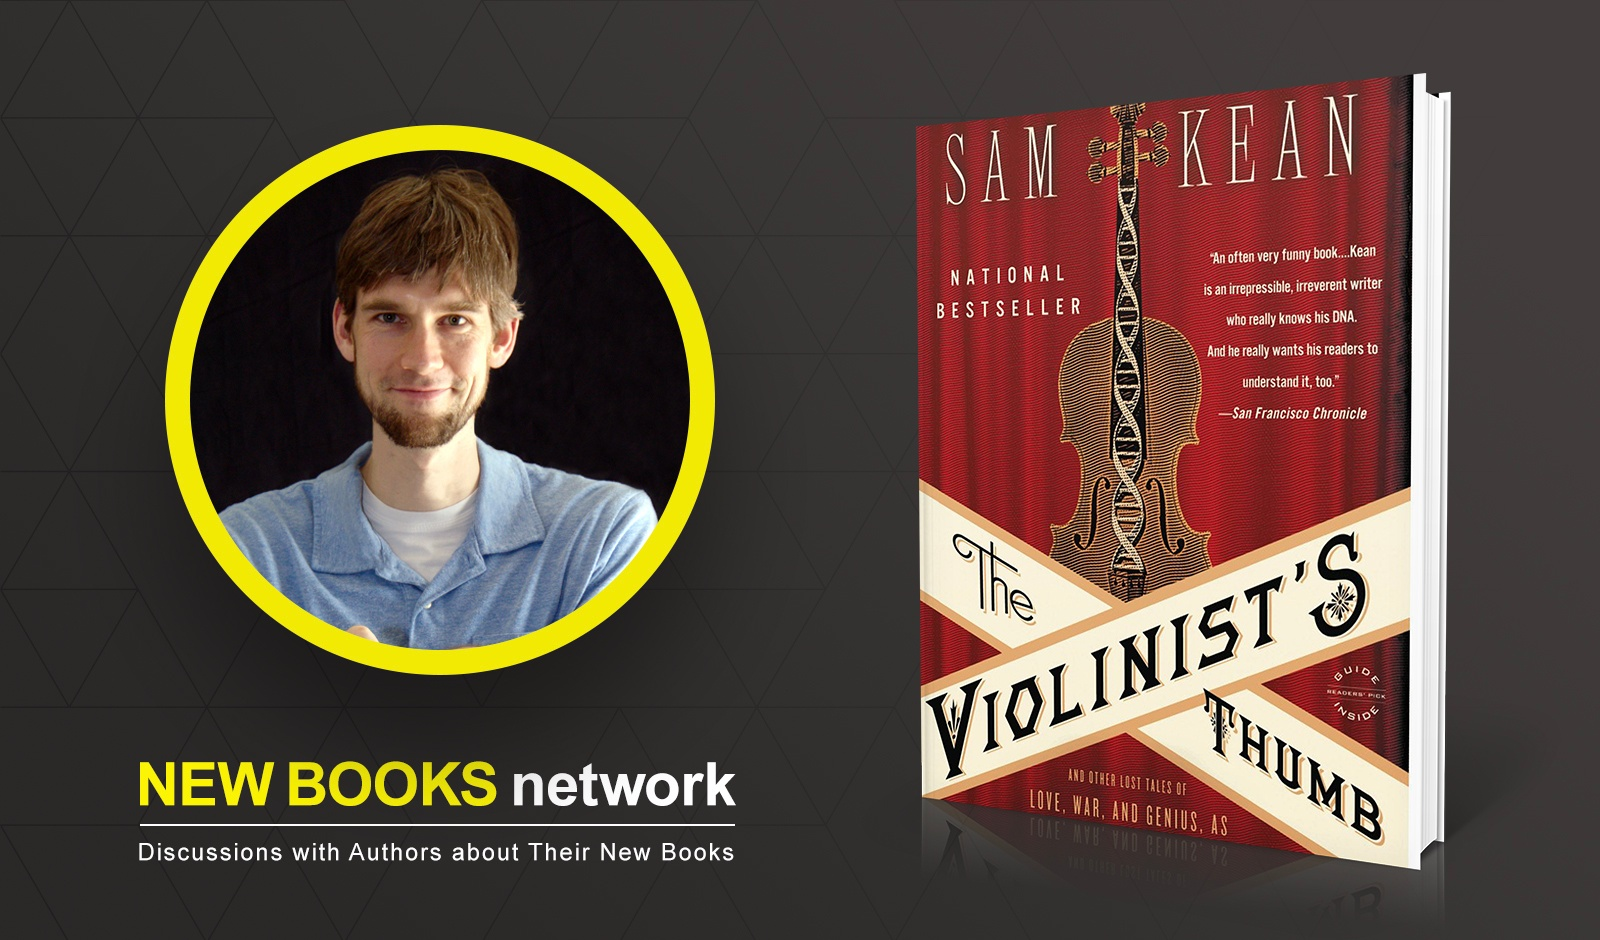 New Books In Medicine Podcast: Sam Kean Tells Wide Range of Stories From Our Genetic Past